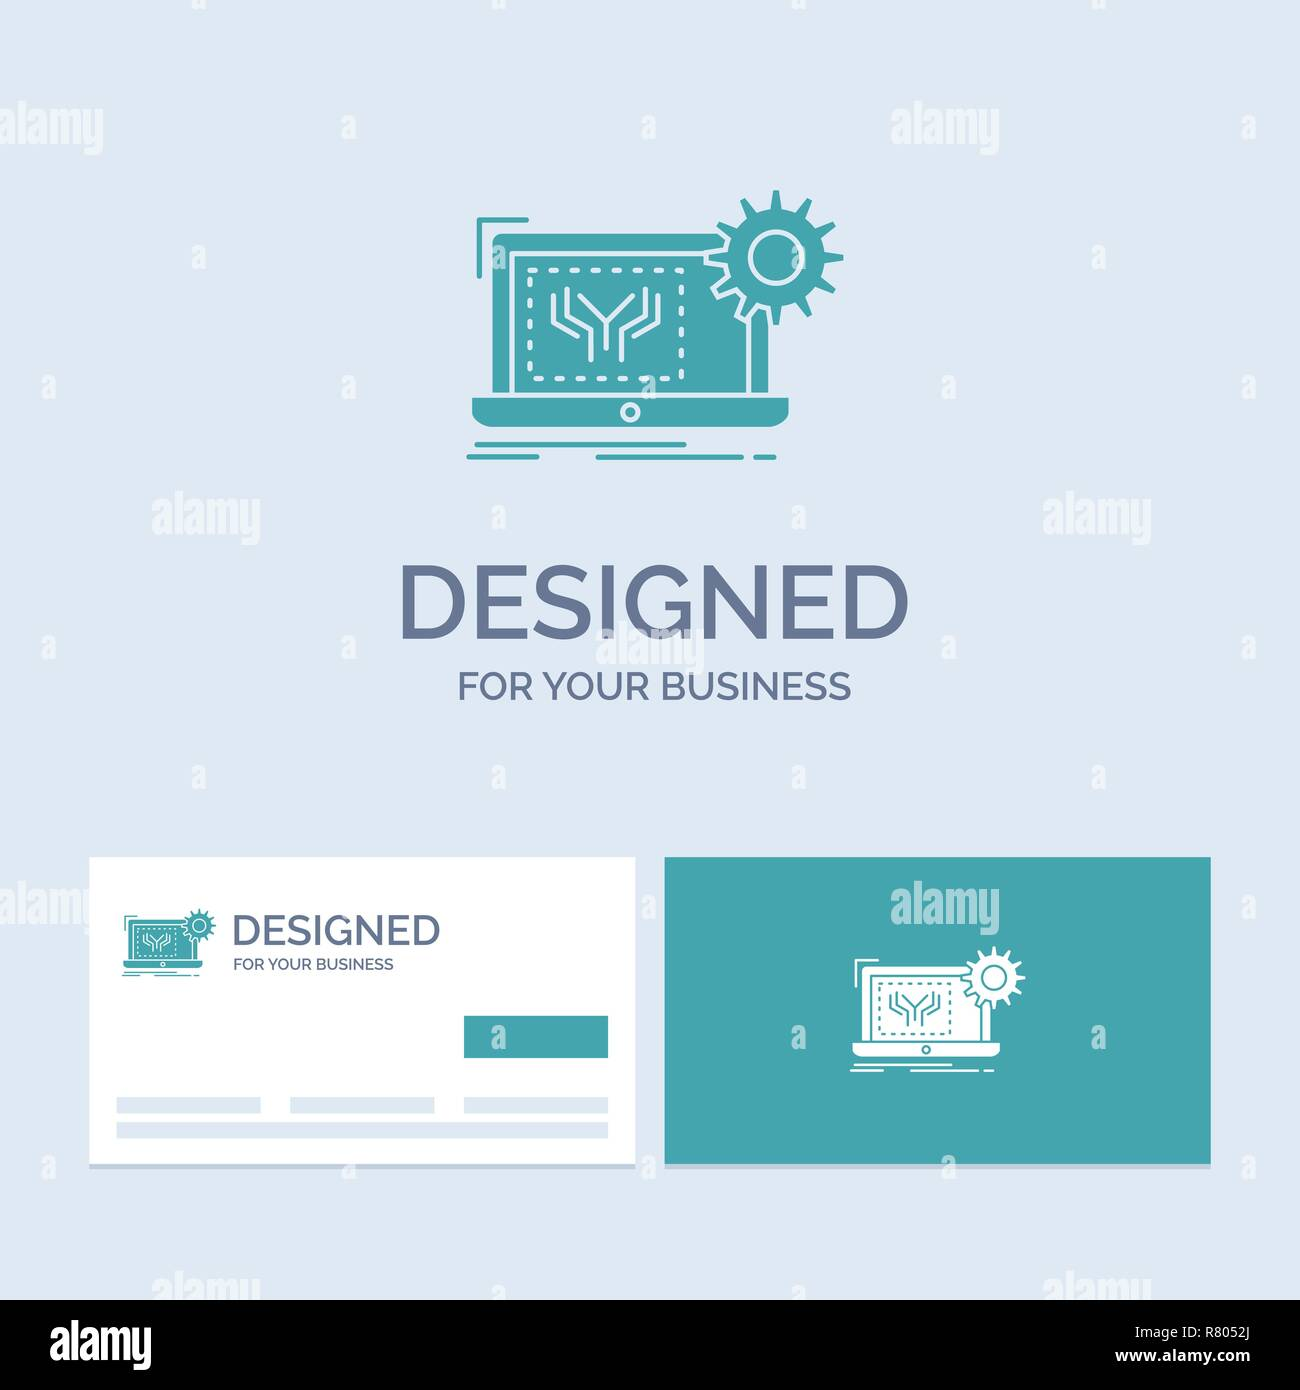 Blueprint, circuit, electronics, engineering, hardware Business Logo Glyph Icon Symbol for your business. Turquoise Business Cards with Brand logo tem - Stock Image